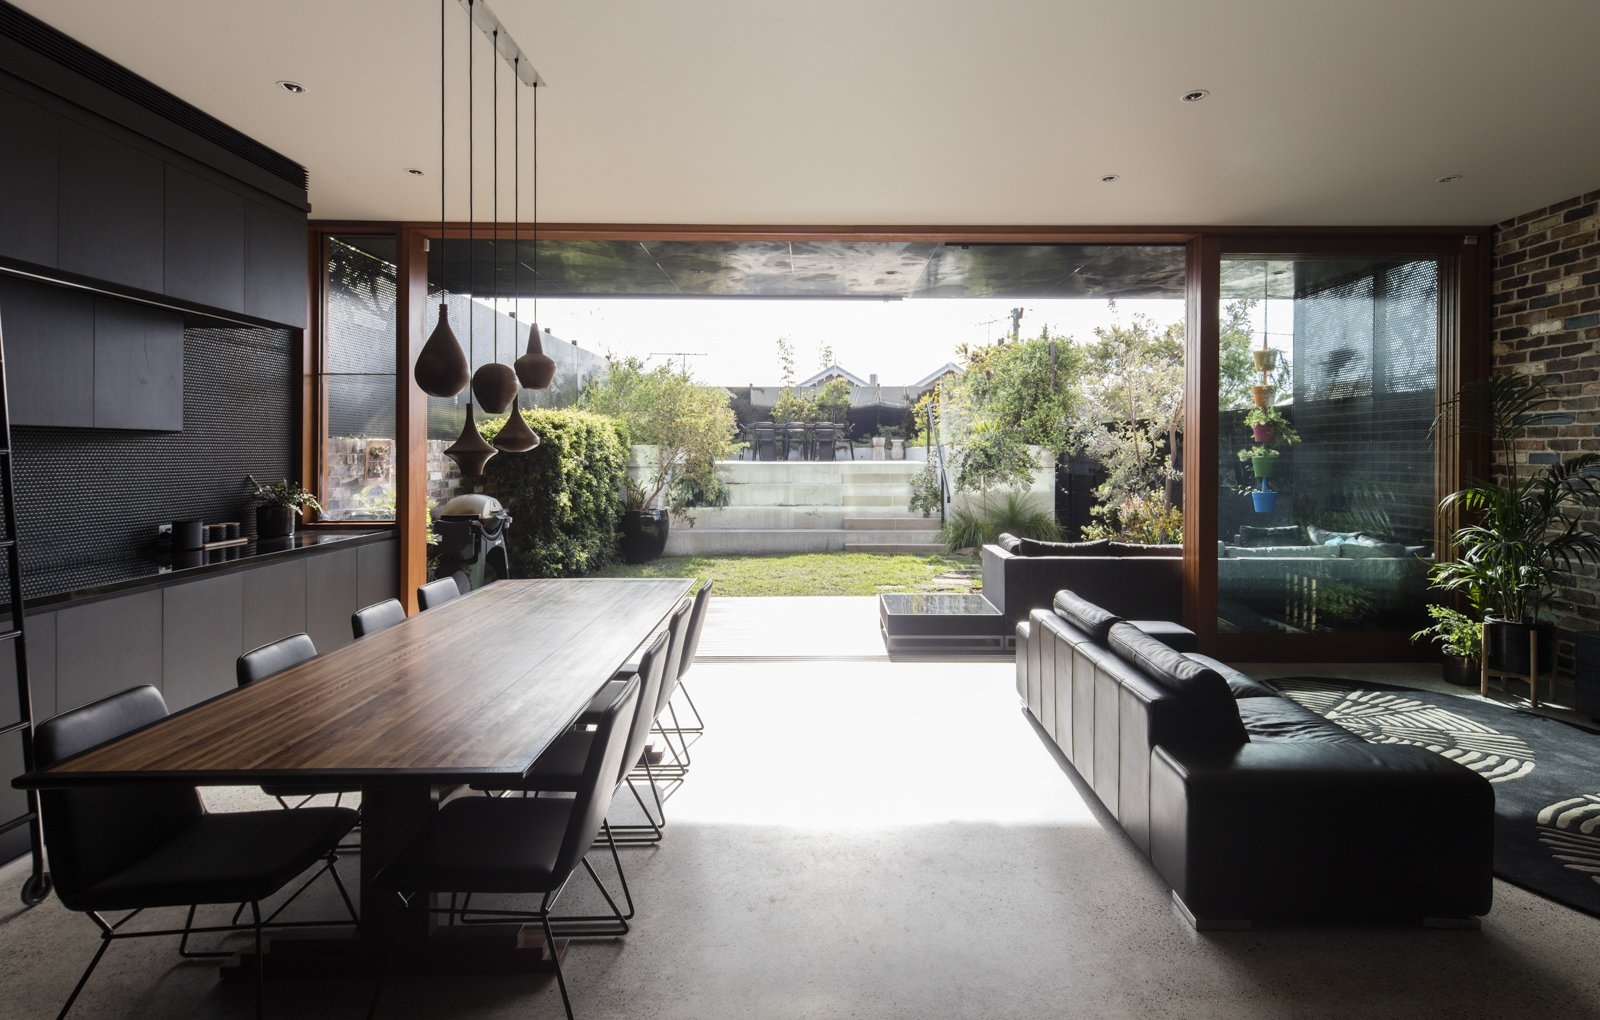 A Dark Sydney Home Finds Light With a Unifying Expansion